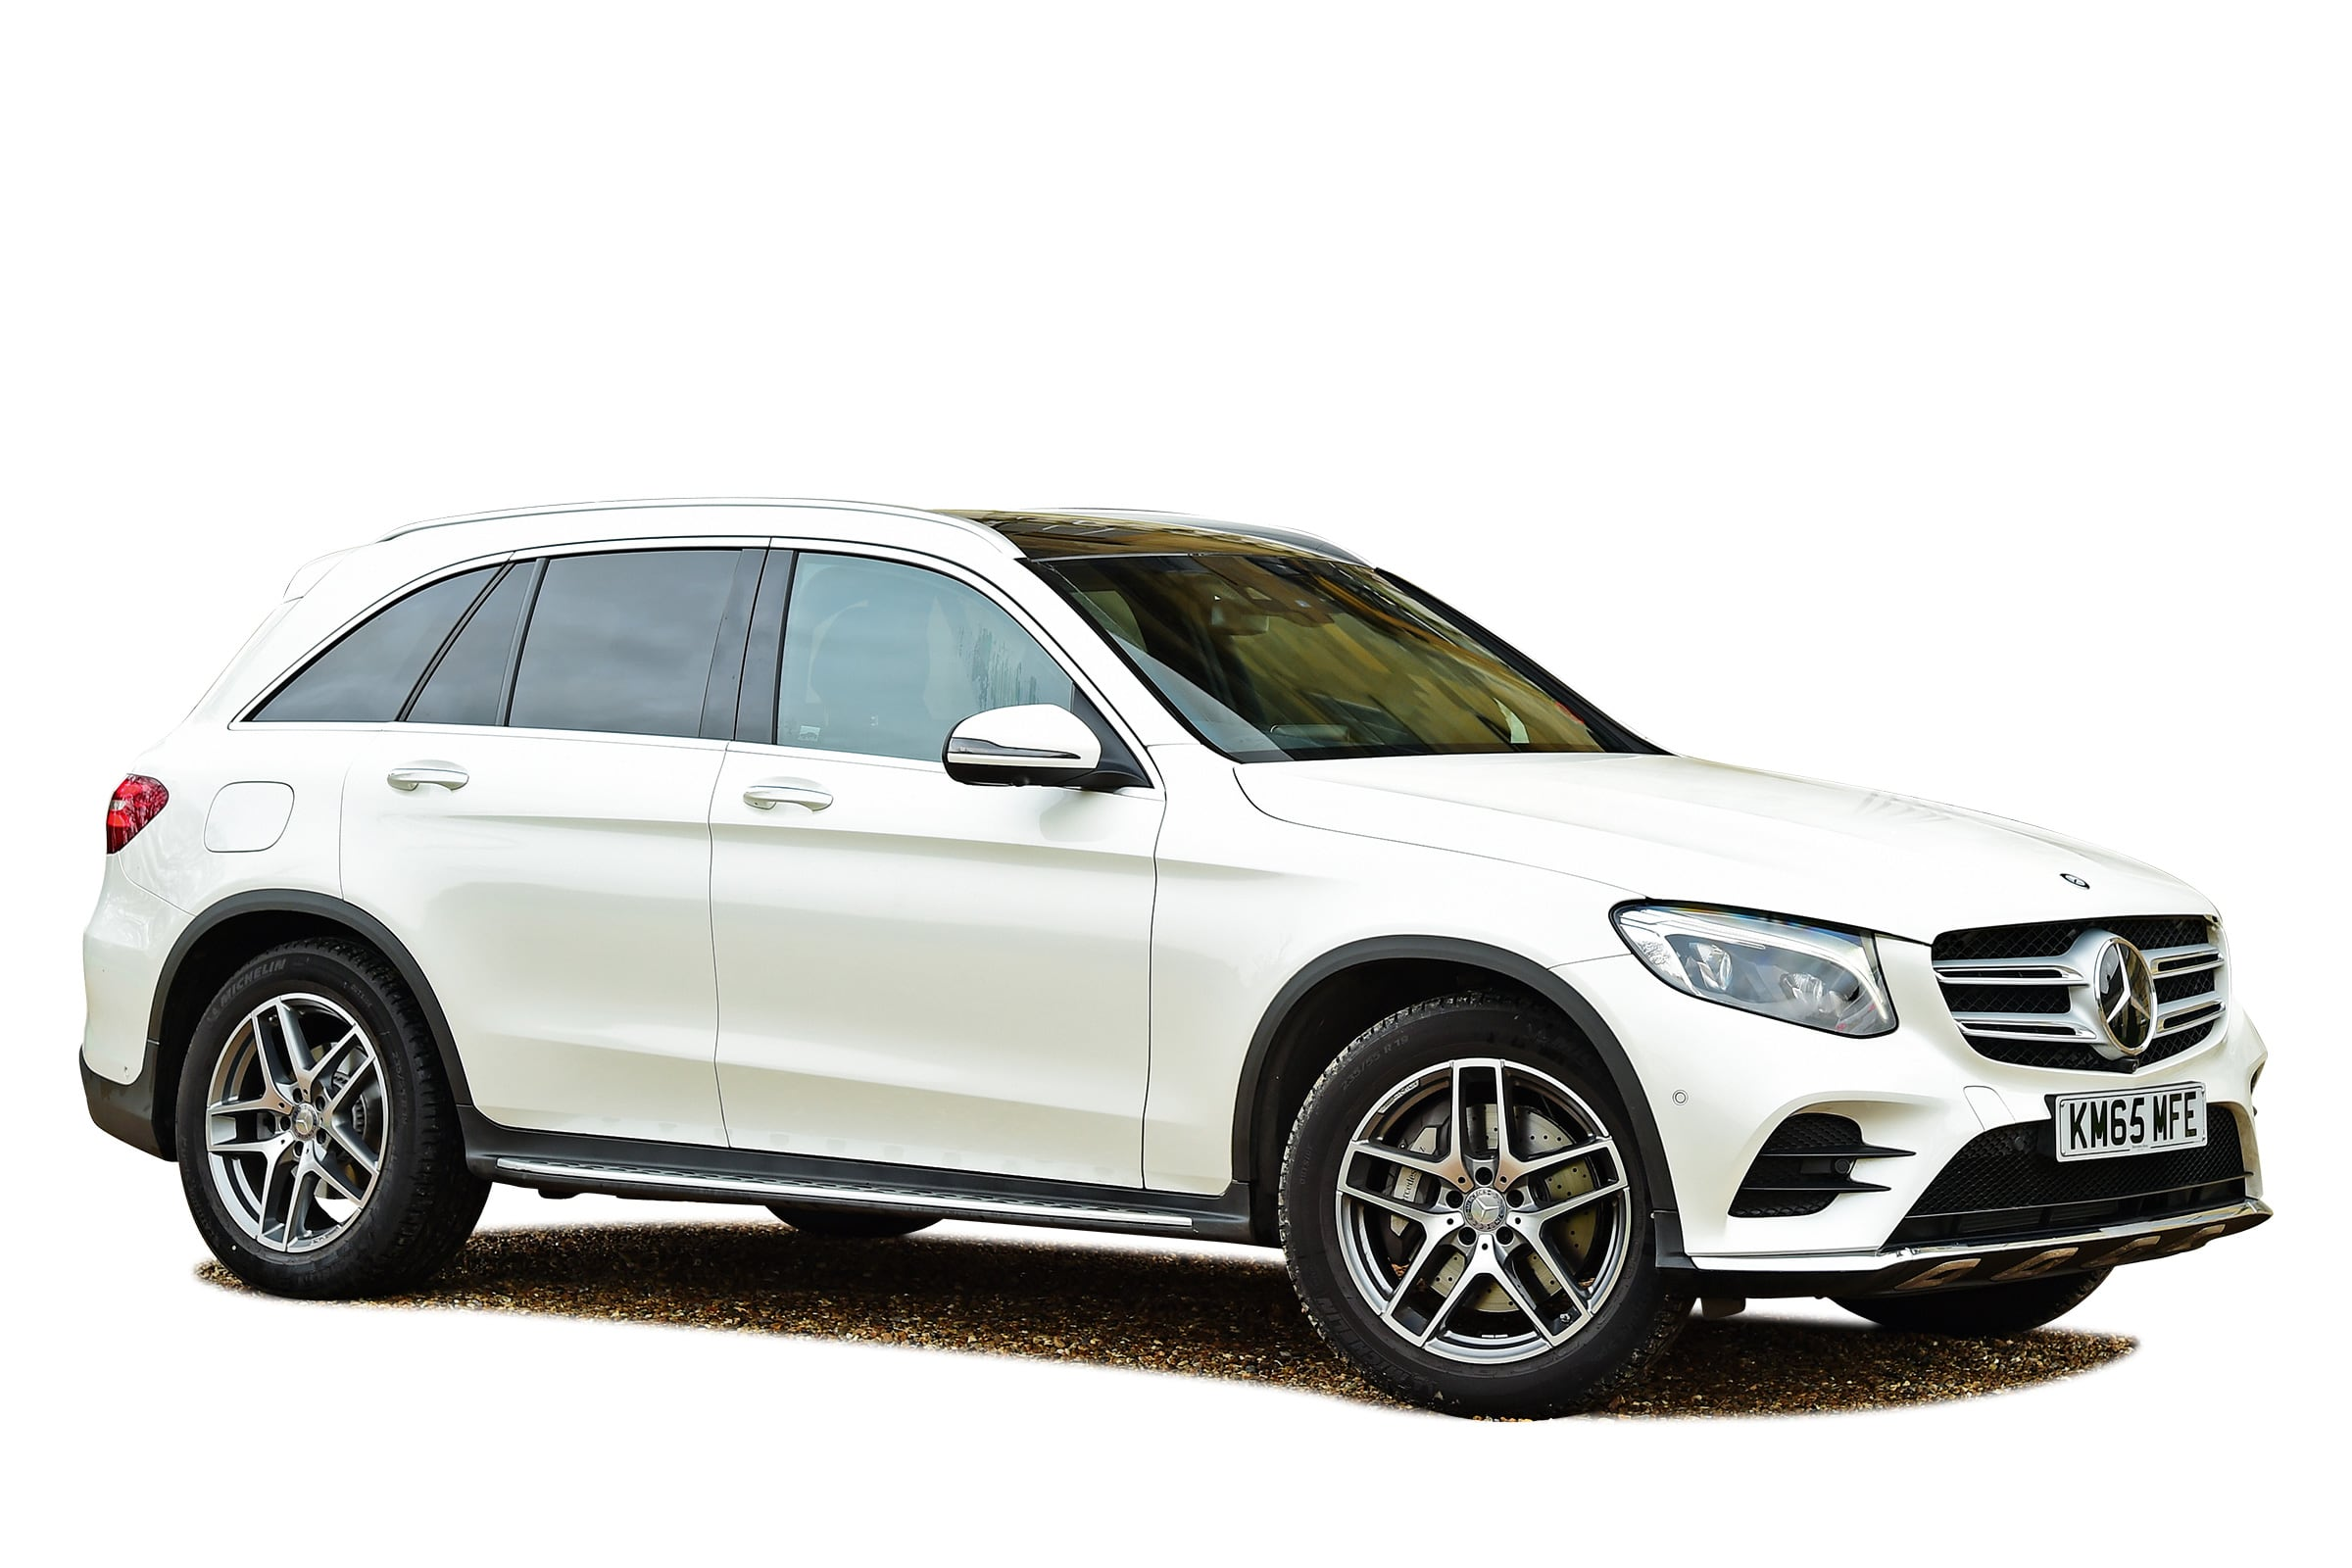 Mercedes GLC Desktop wallpaper